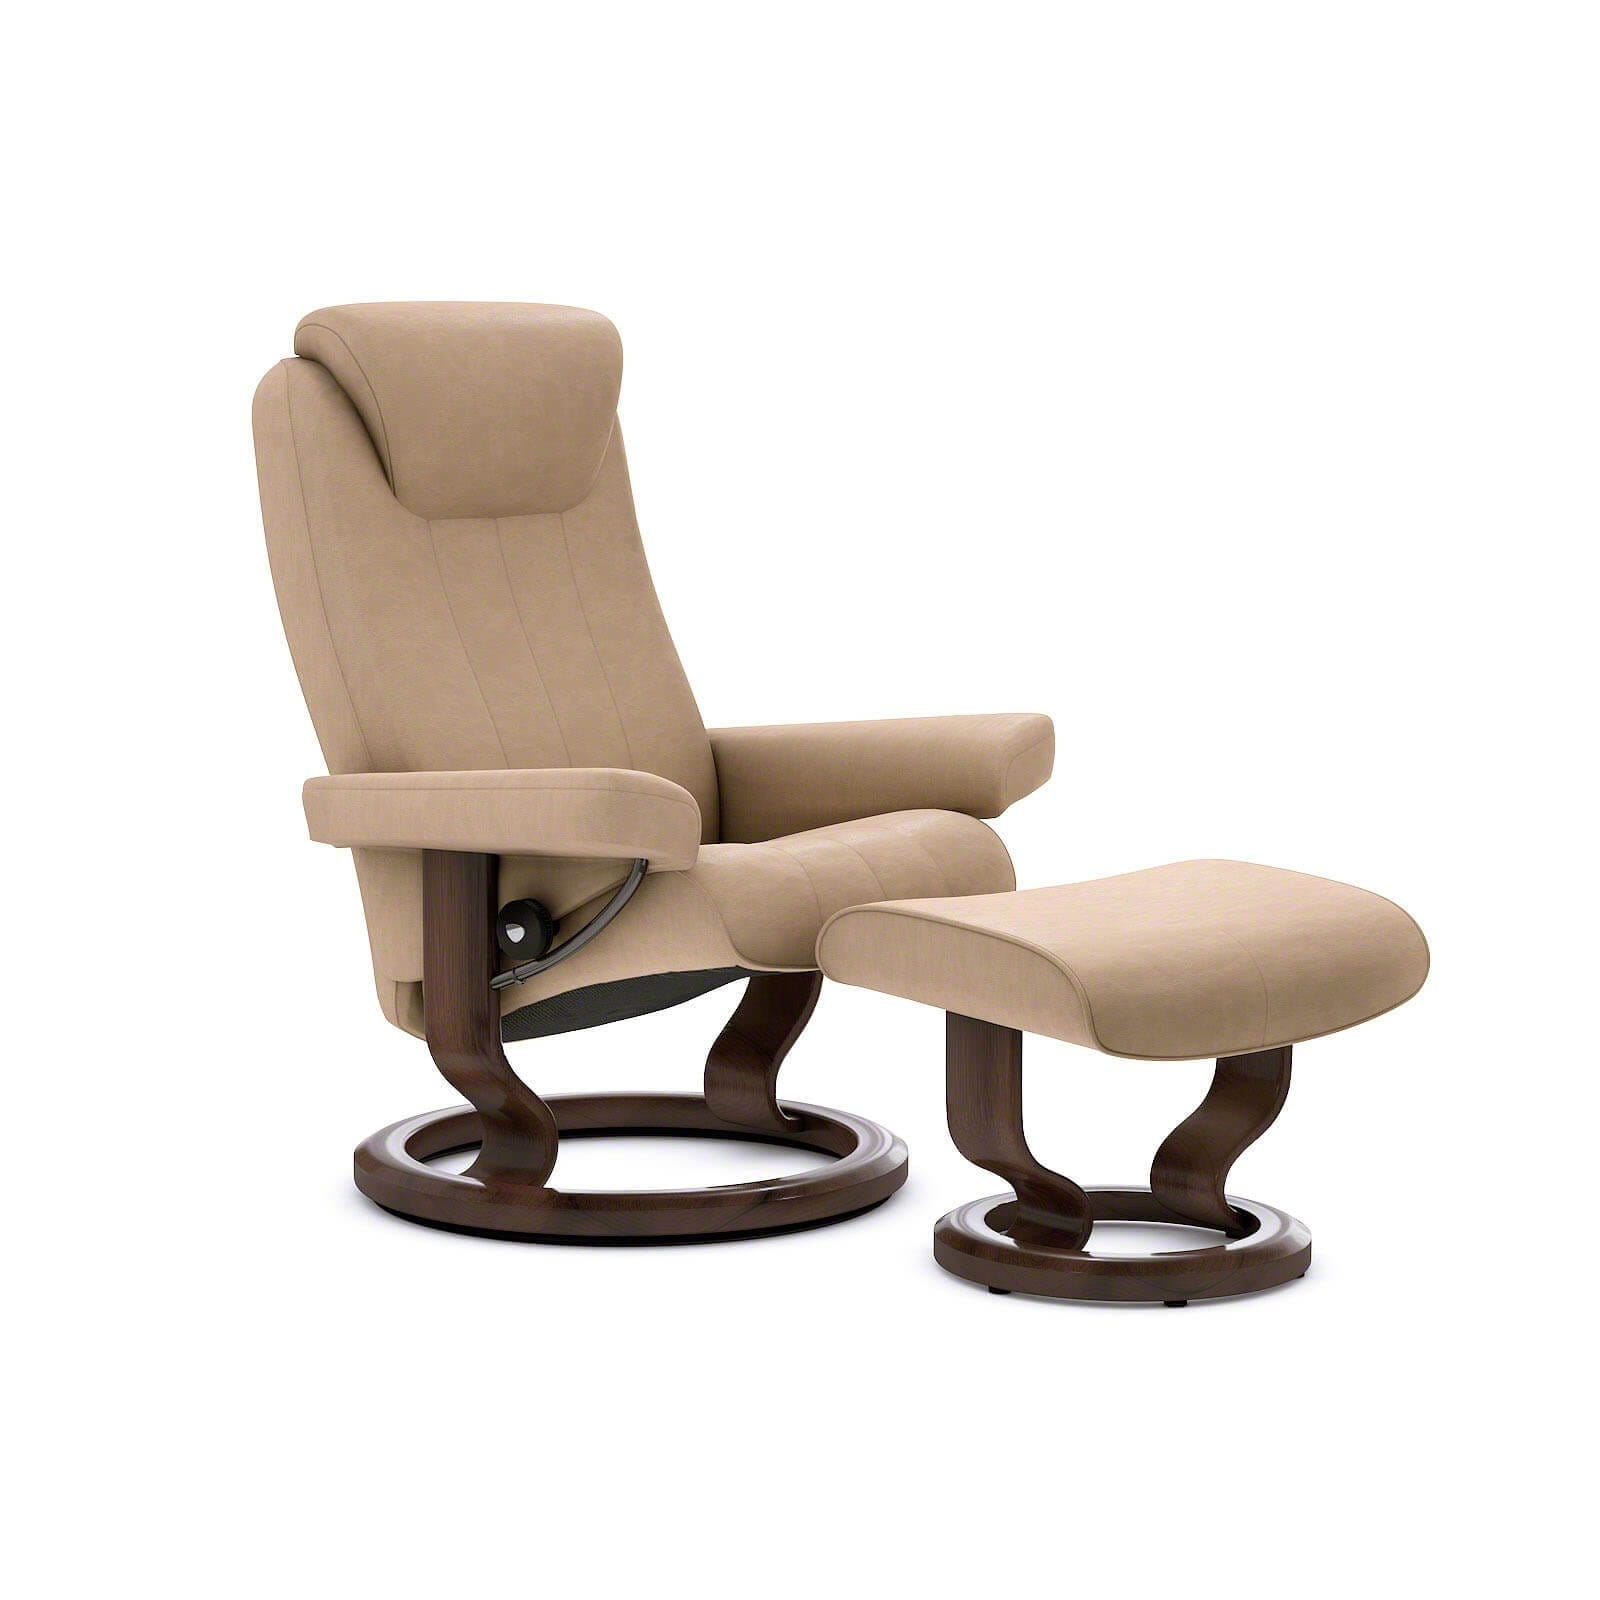 Test Stressless Sessel Stressless Bliss Sessel Paloma Sand Mit Hocker Stressless